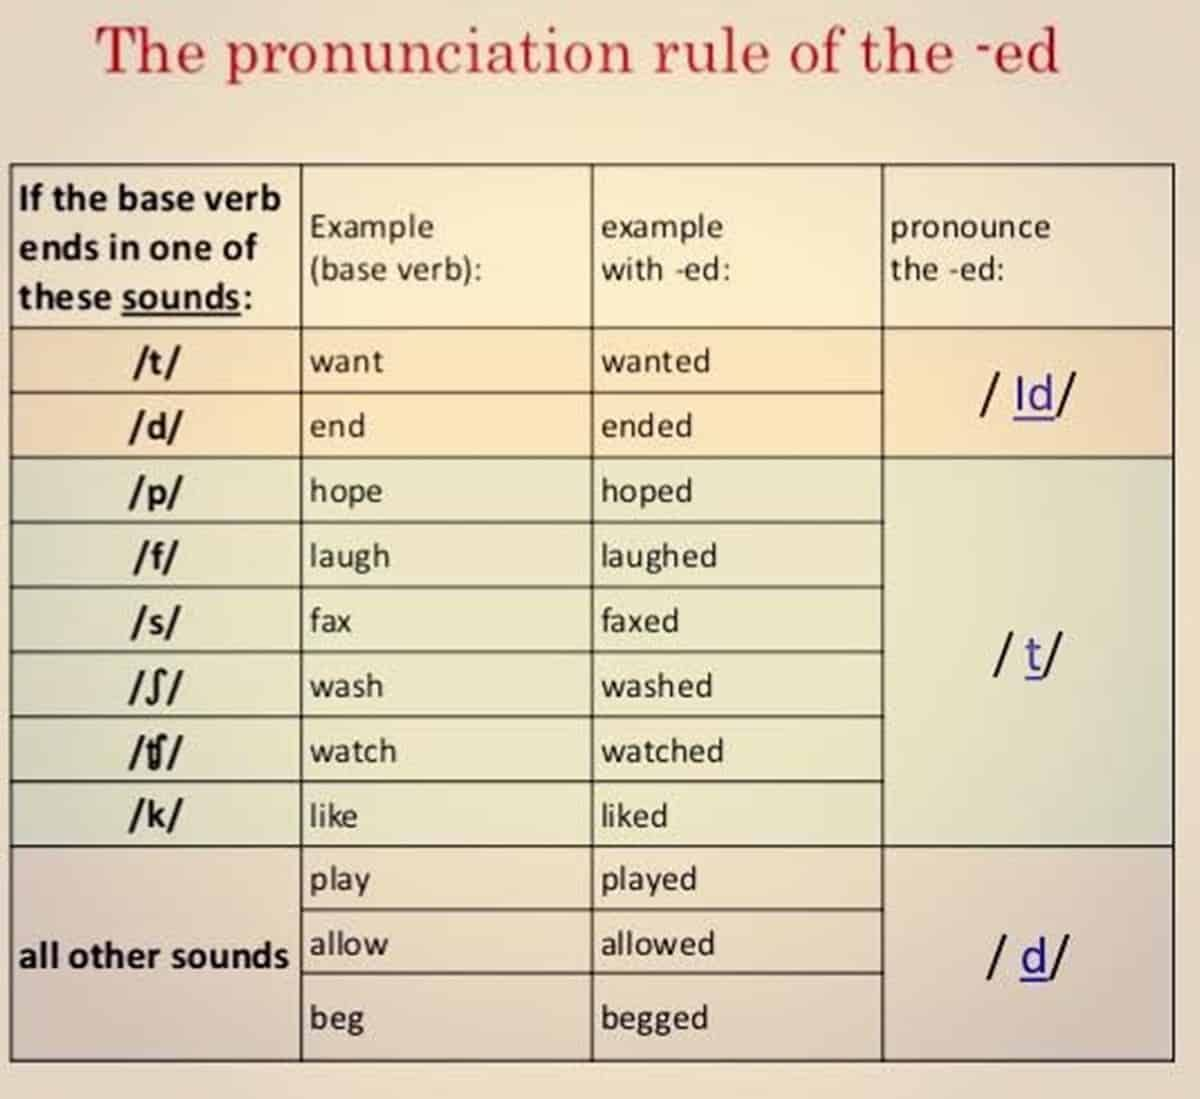 How To Pronounce The Ed Ending Correctly In English